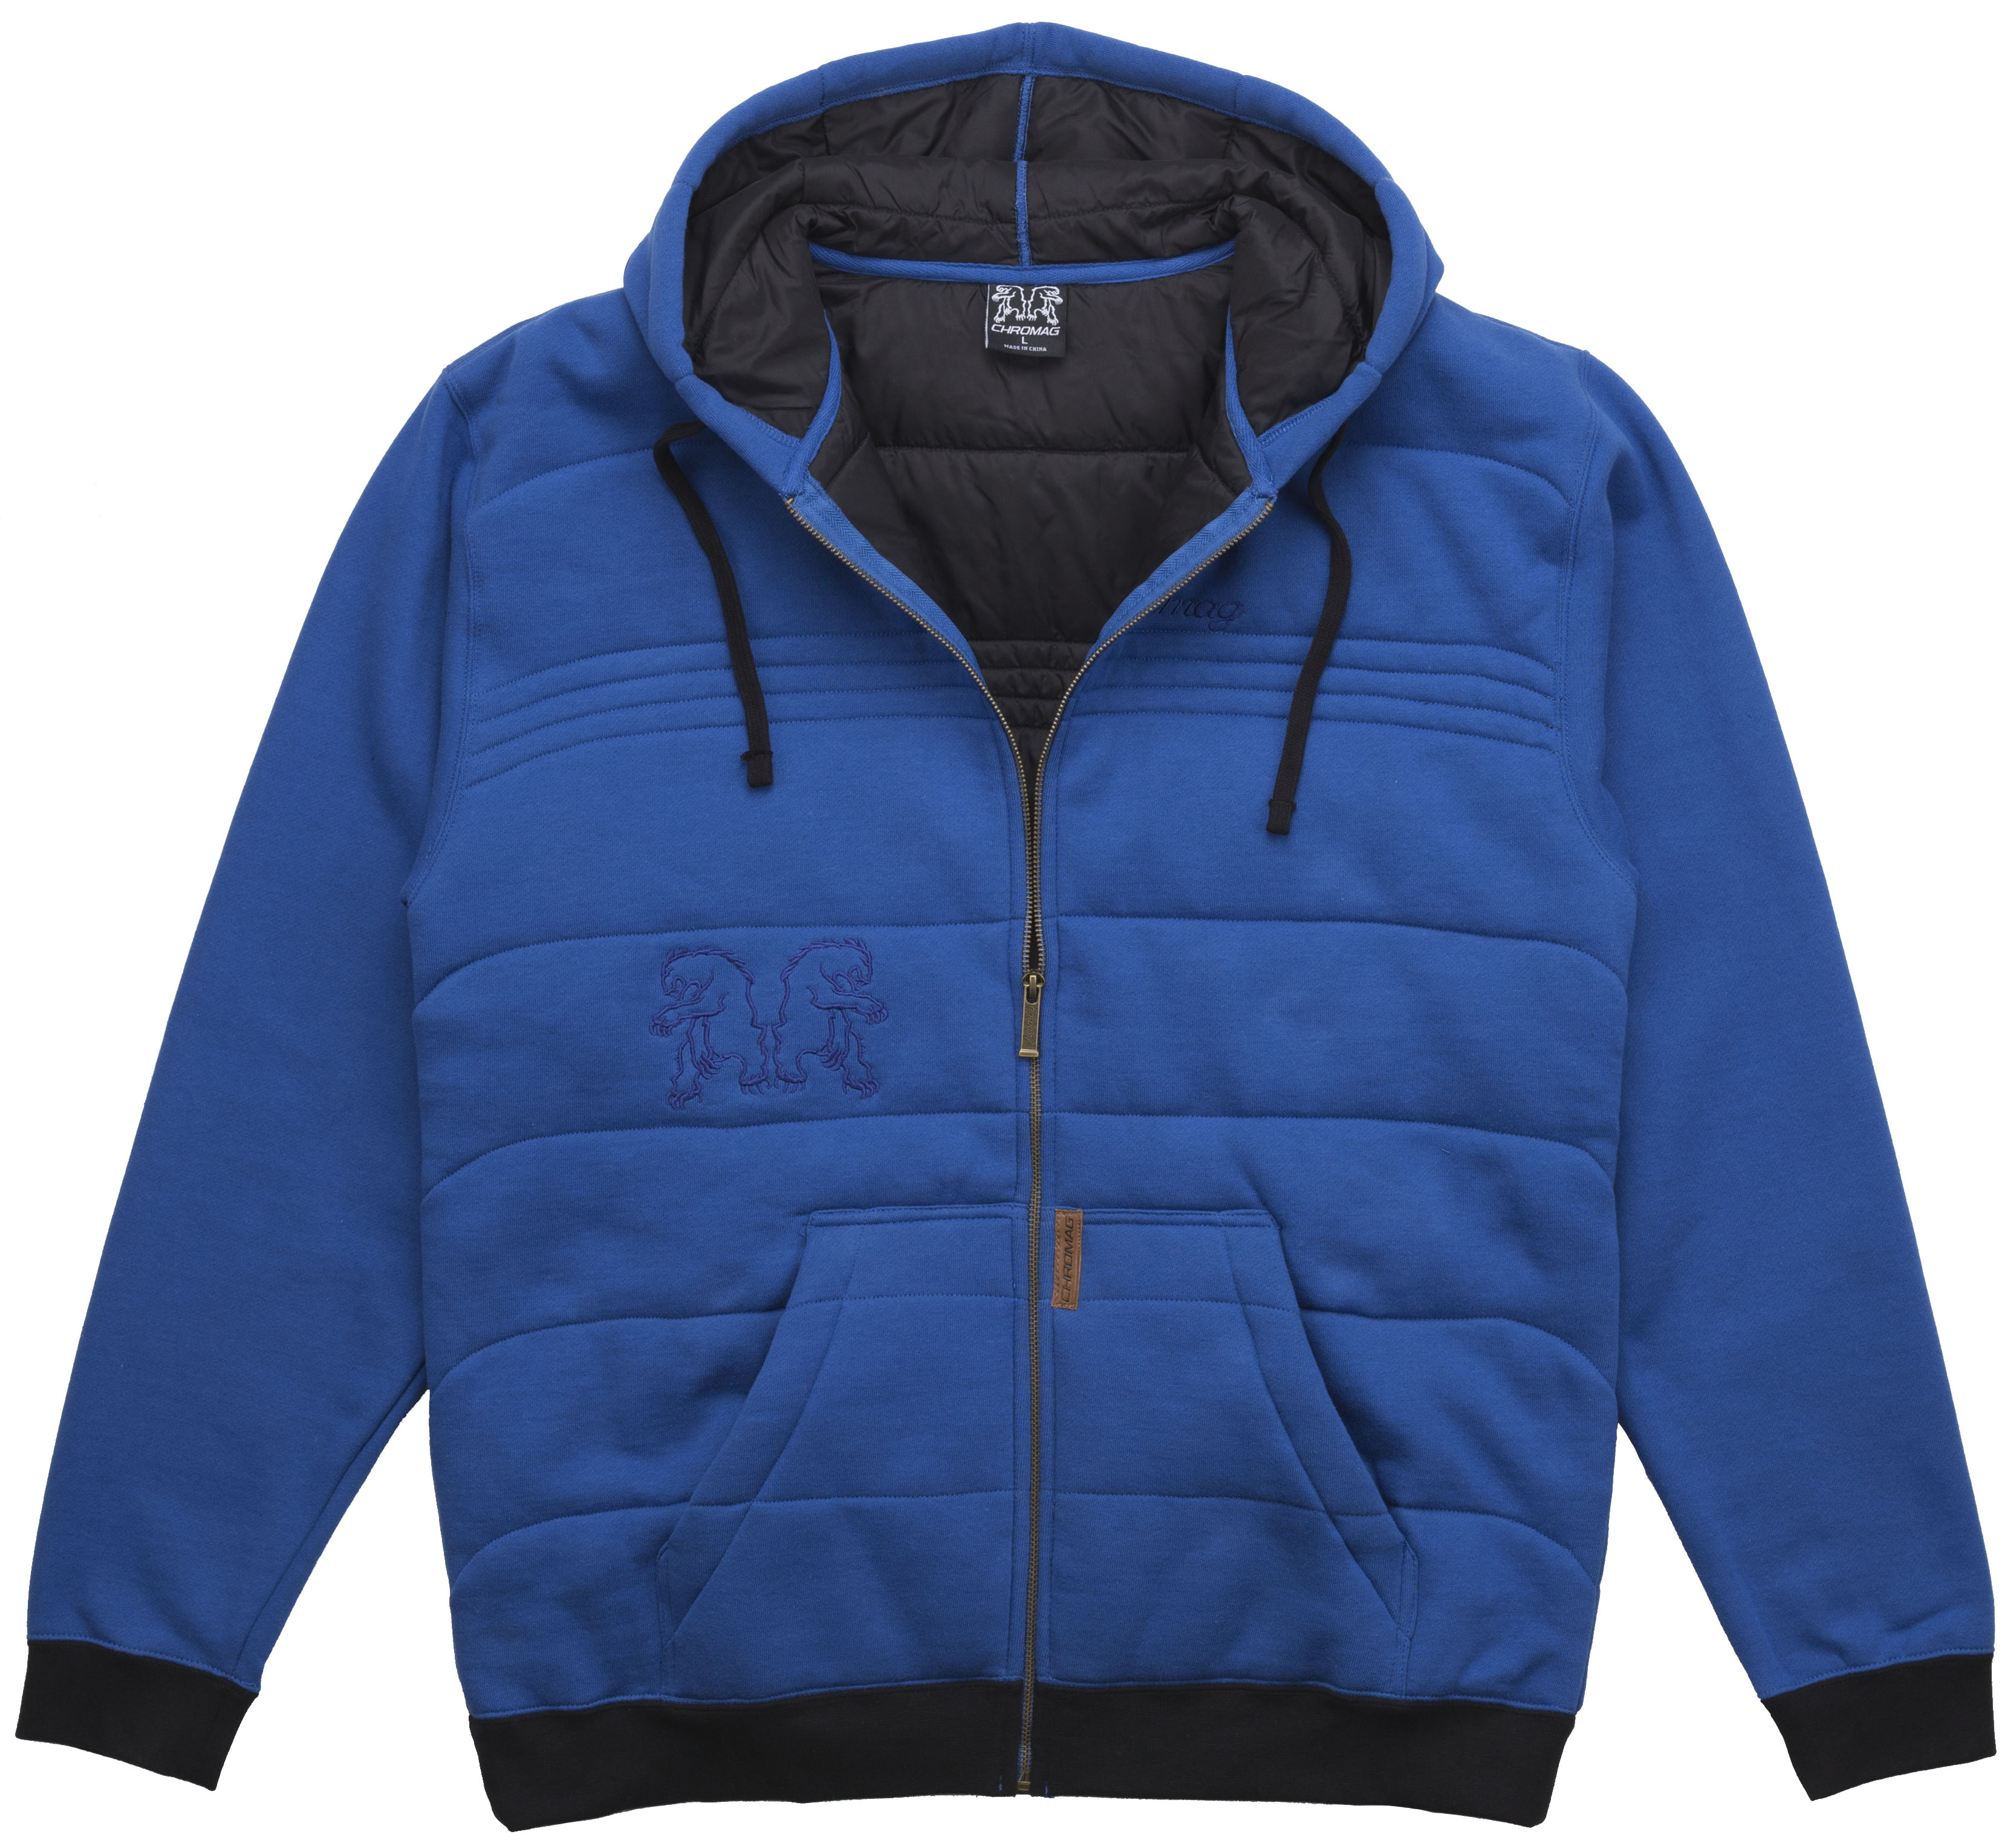 Chromag Quilted Jacket